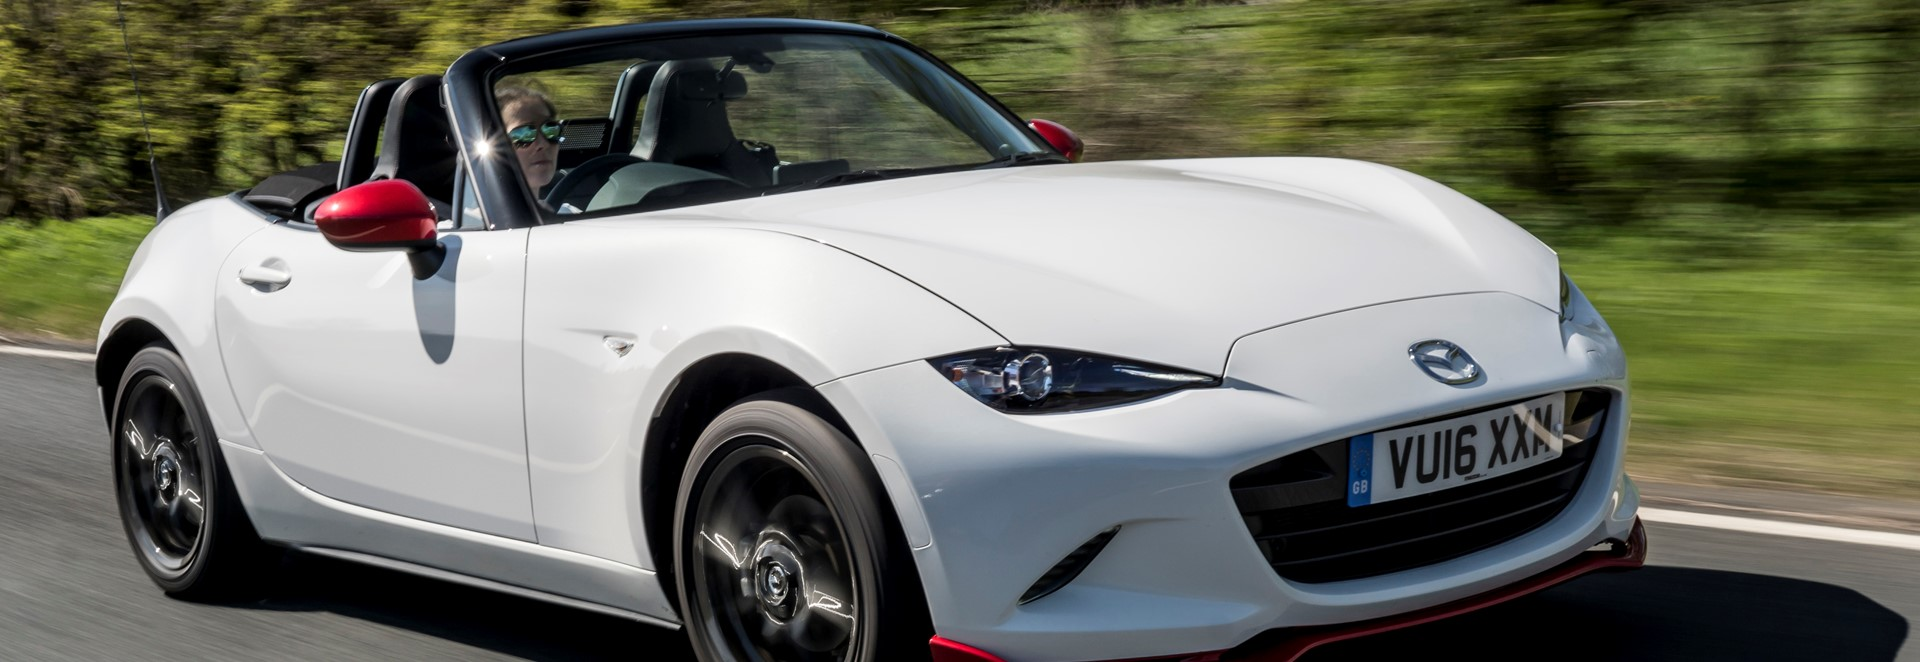 Mazda MX-5 convertible review